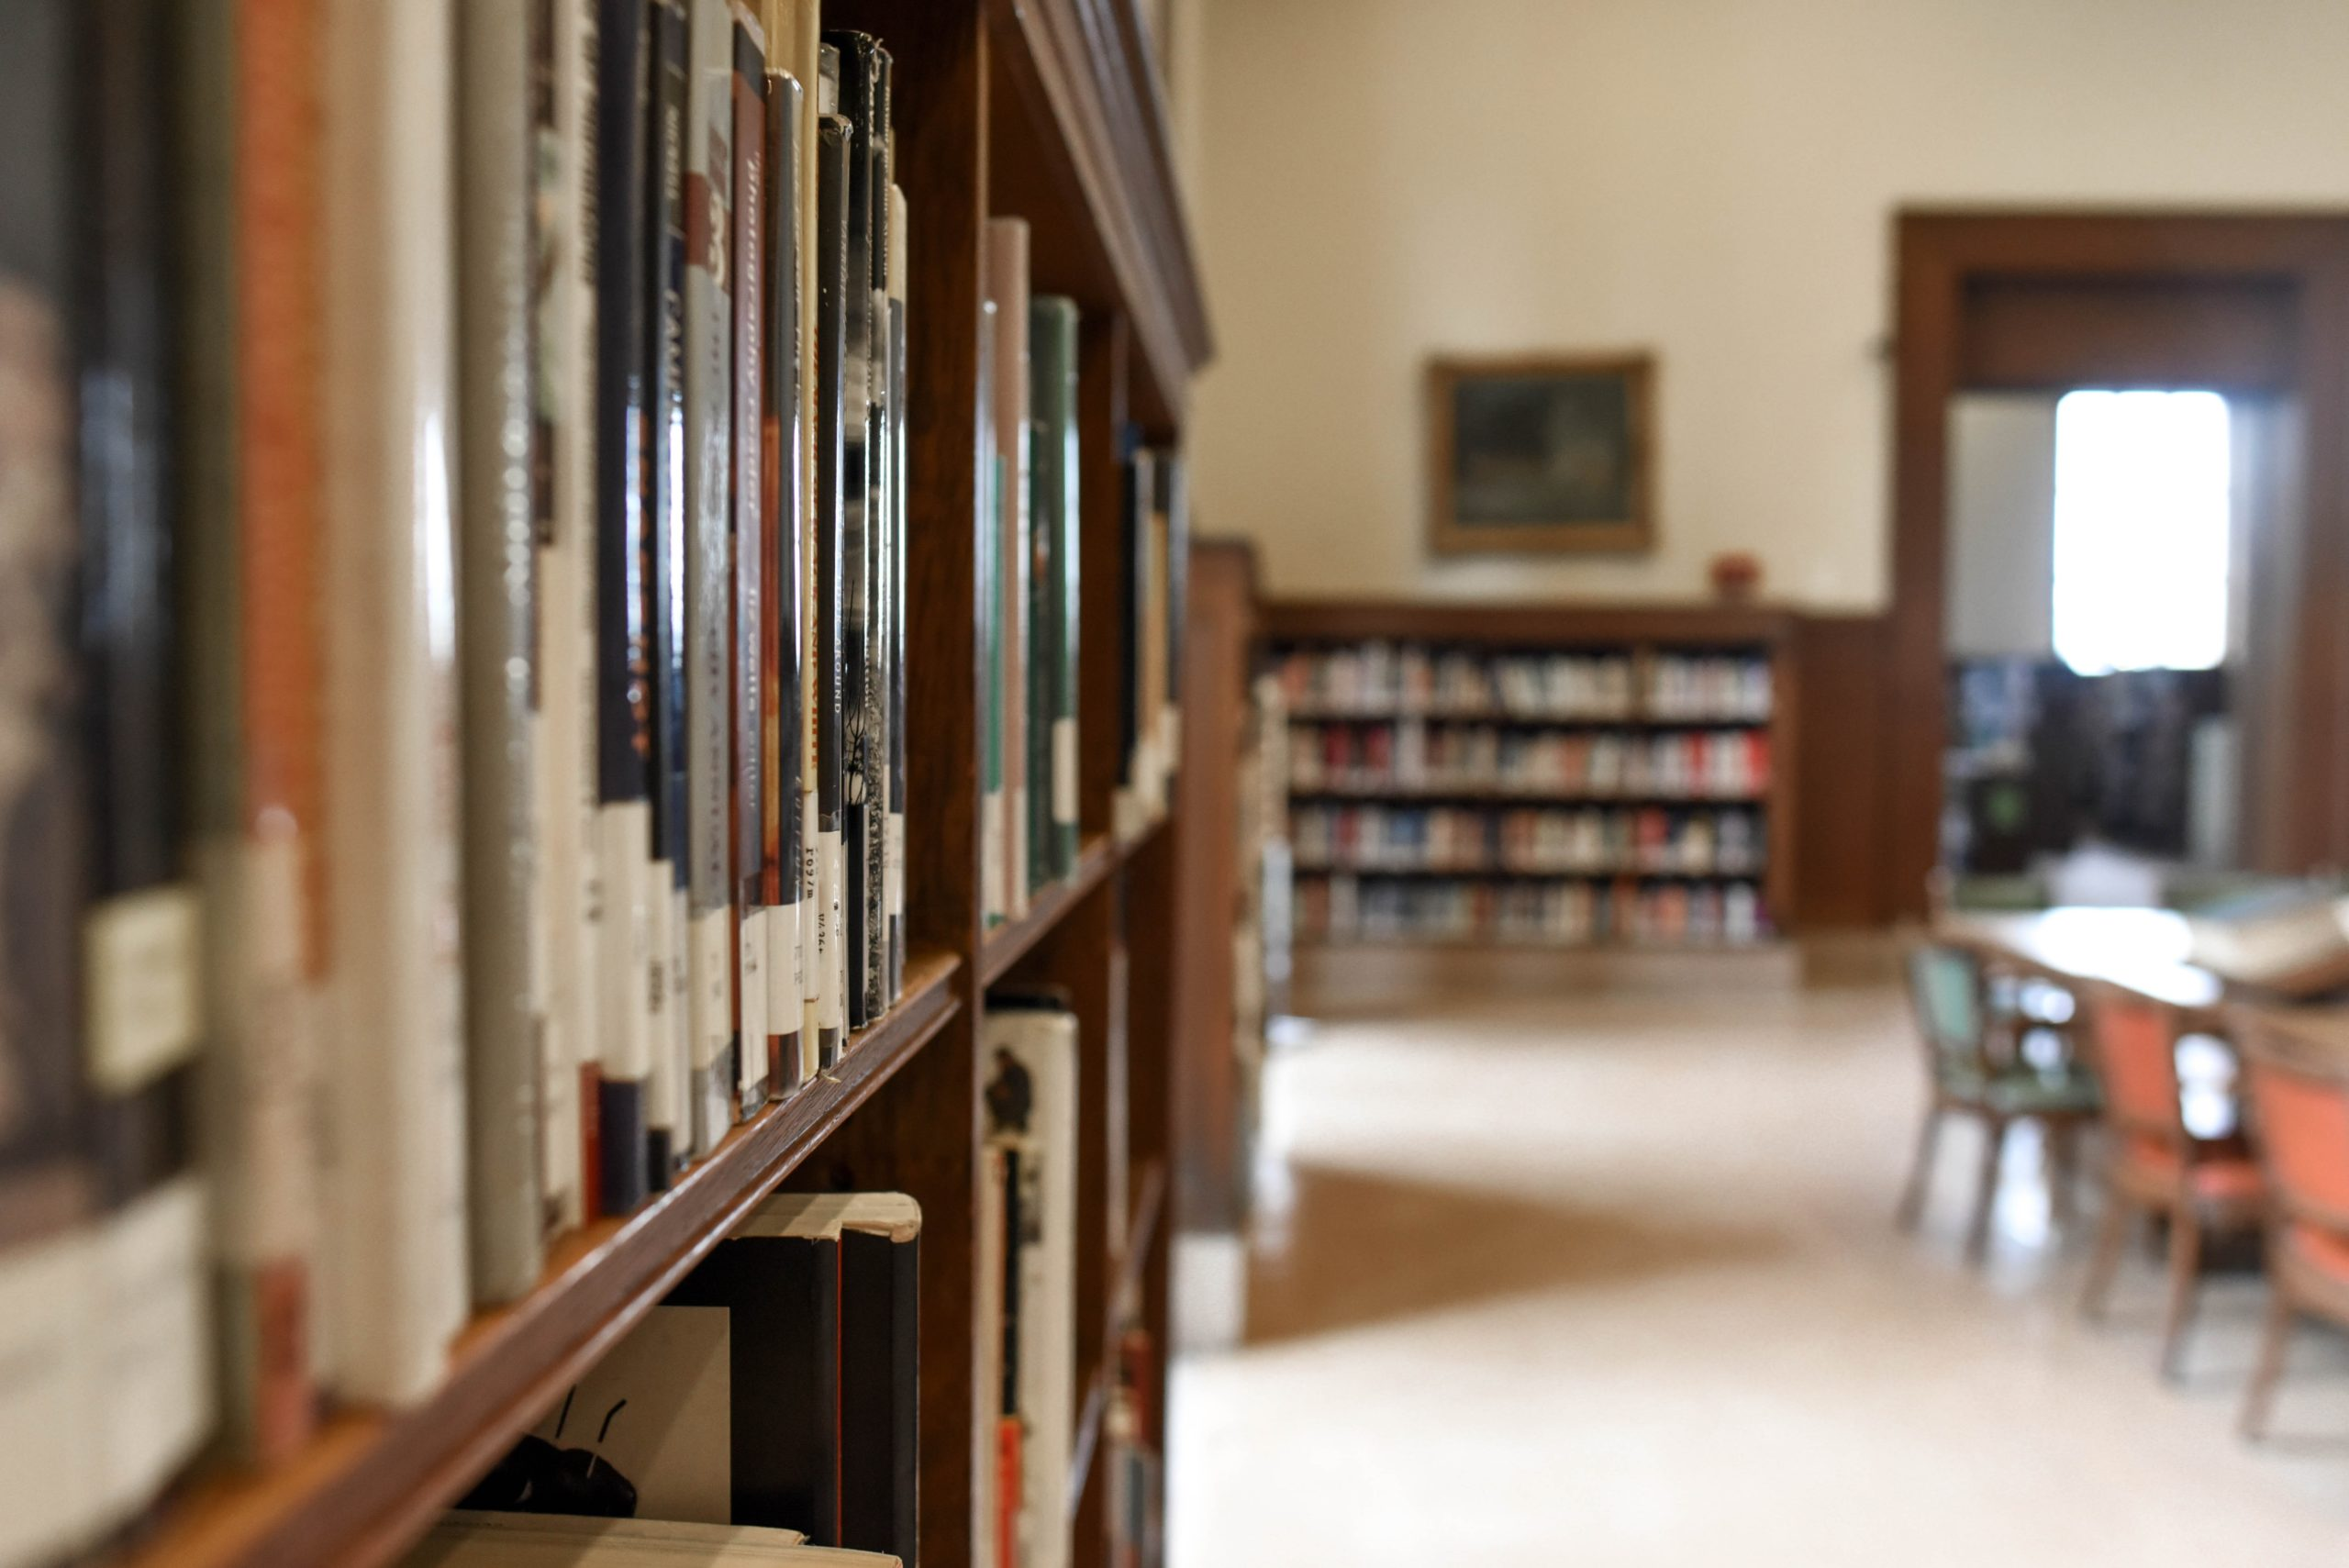 Shallow focus image of a shelf of books in an empty library.